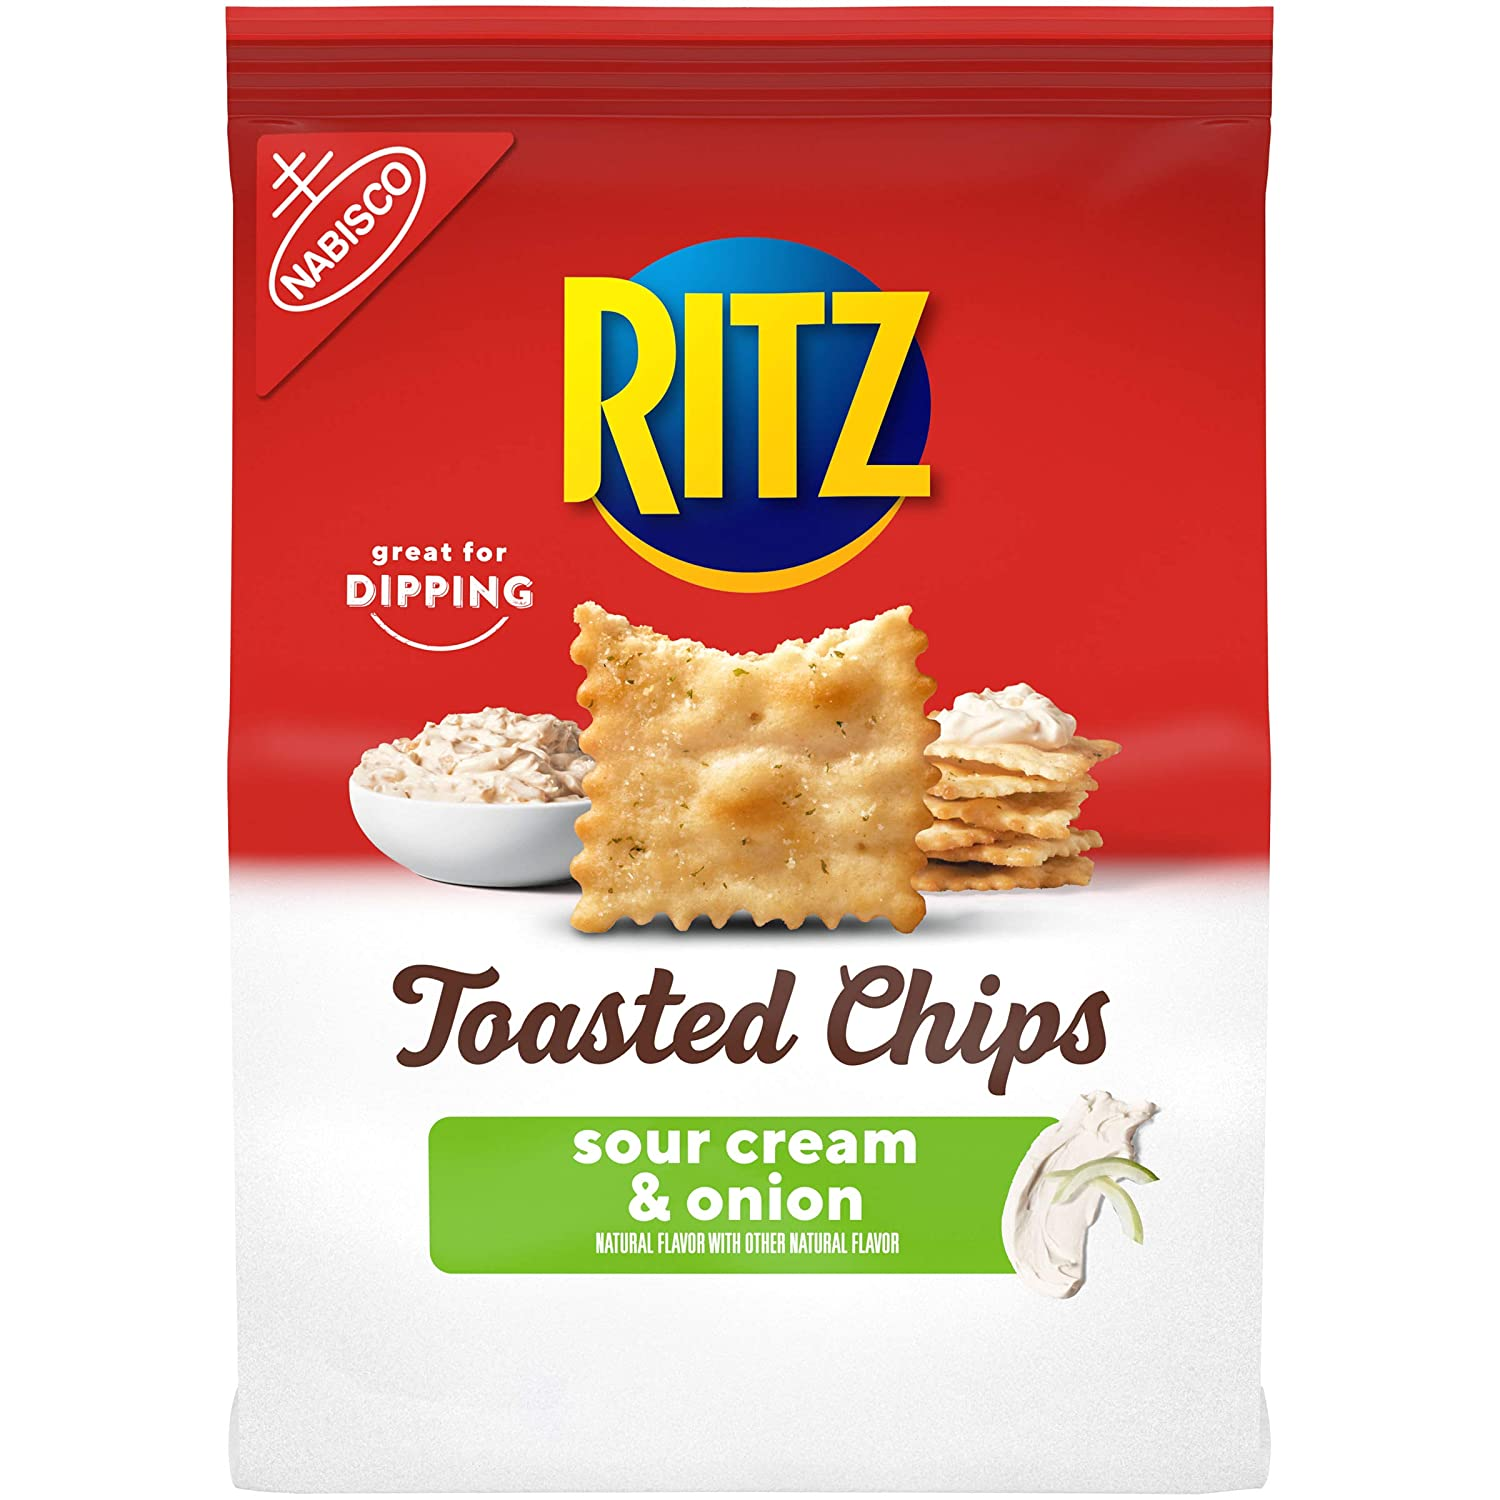 RITZ Toasted Chips Sour Cream and Onion Crackers, 8.1 oz